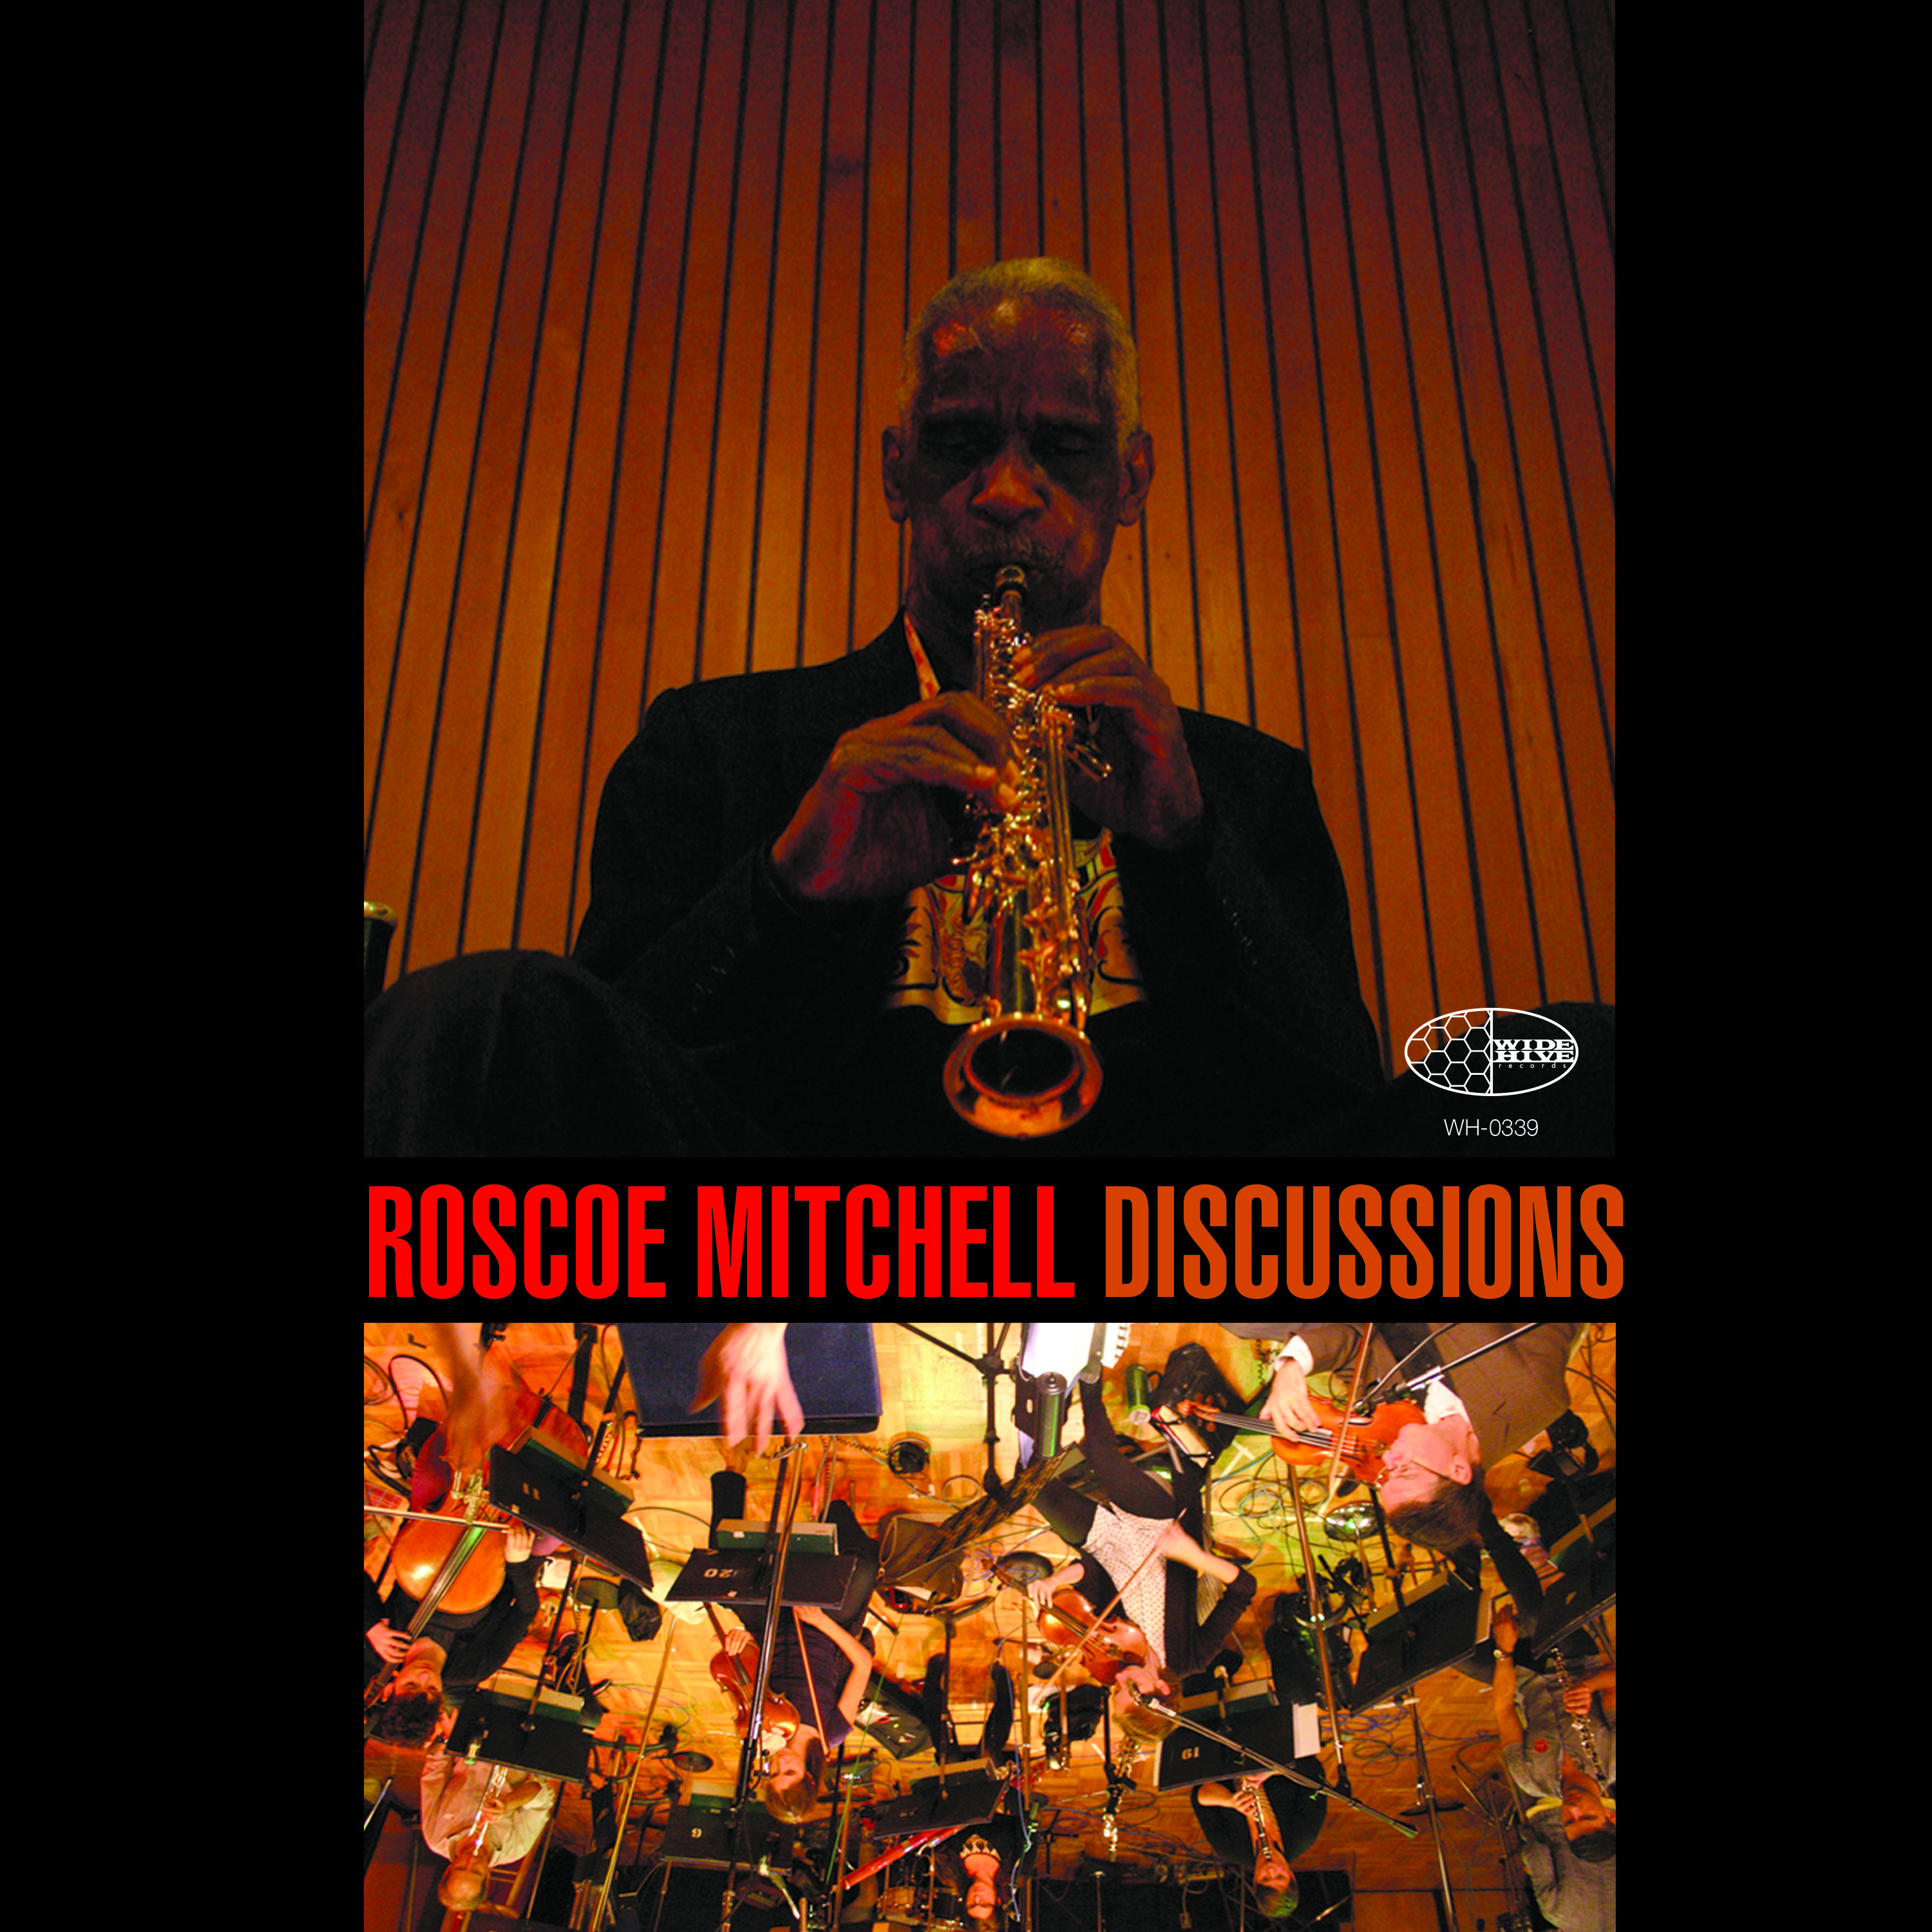 A picture of the cover of Roscoe Mitchell Discussions.